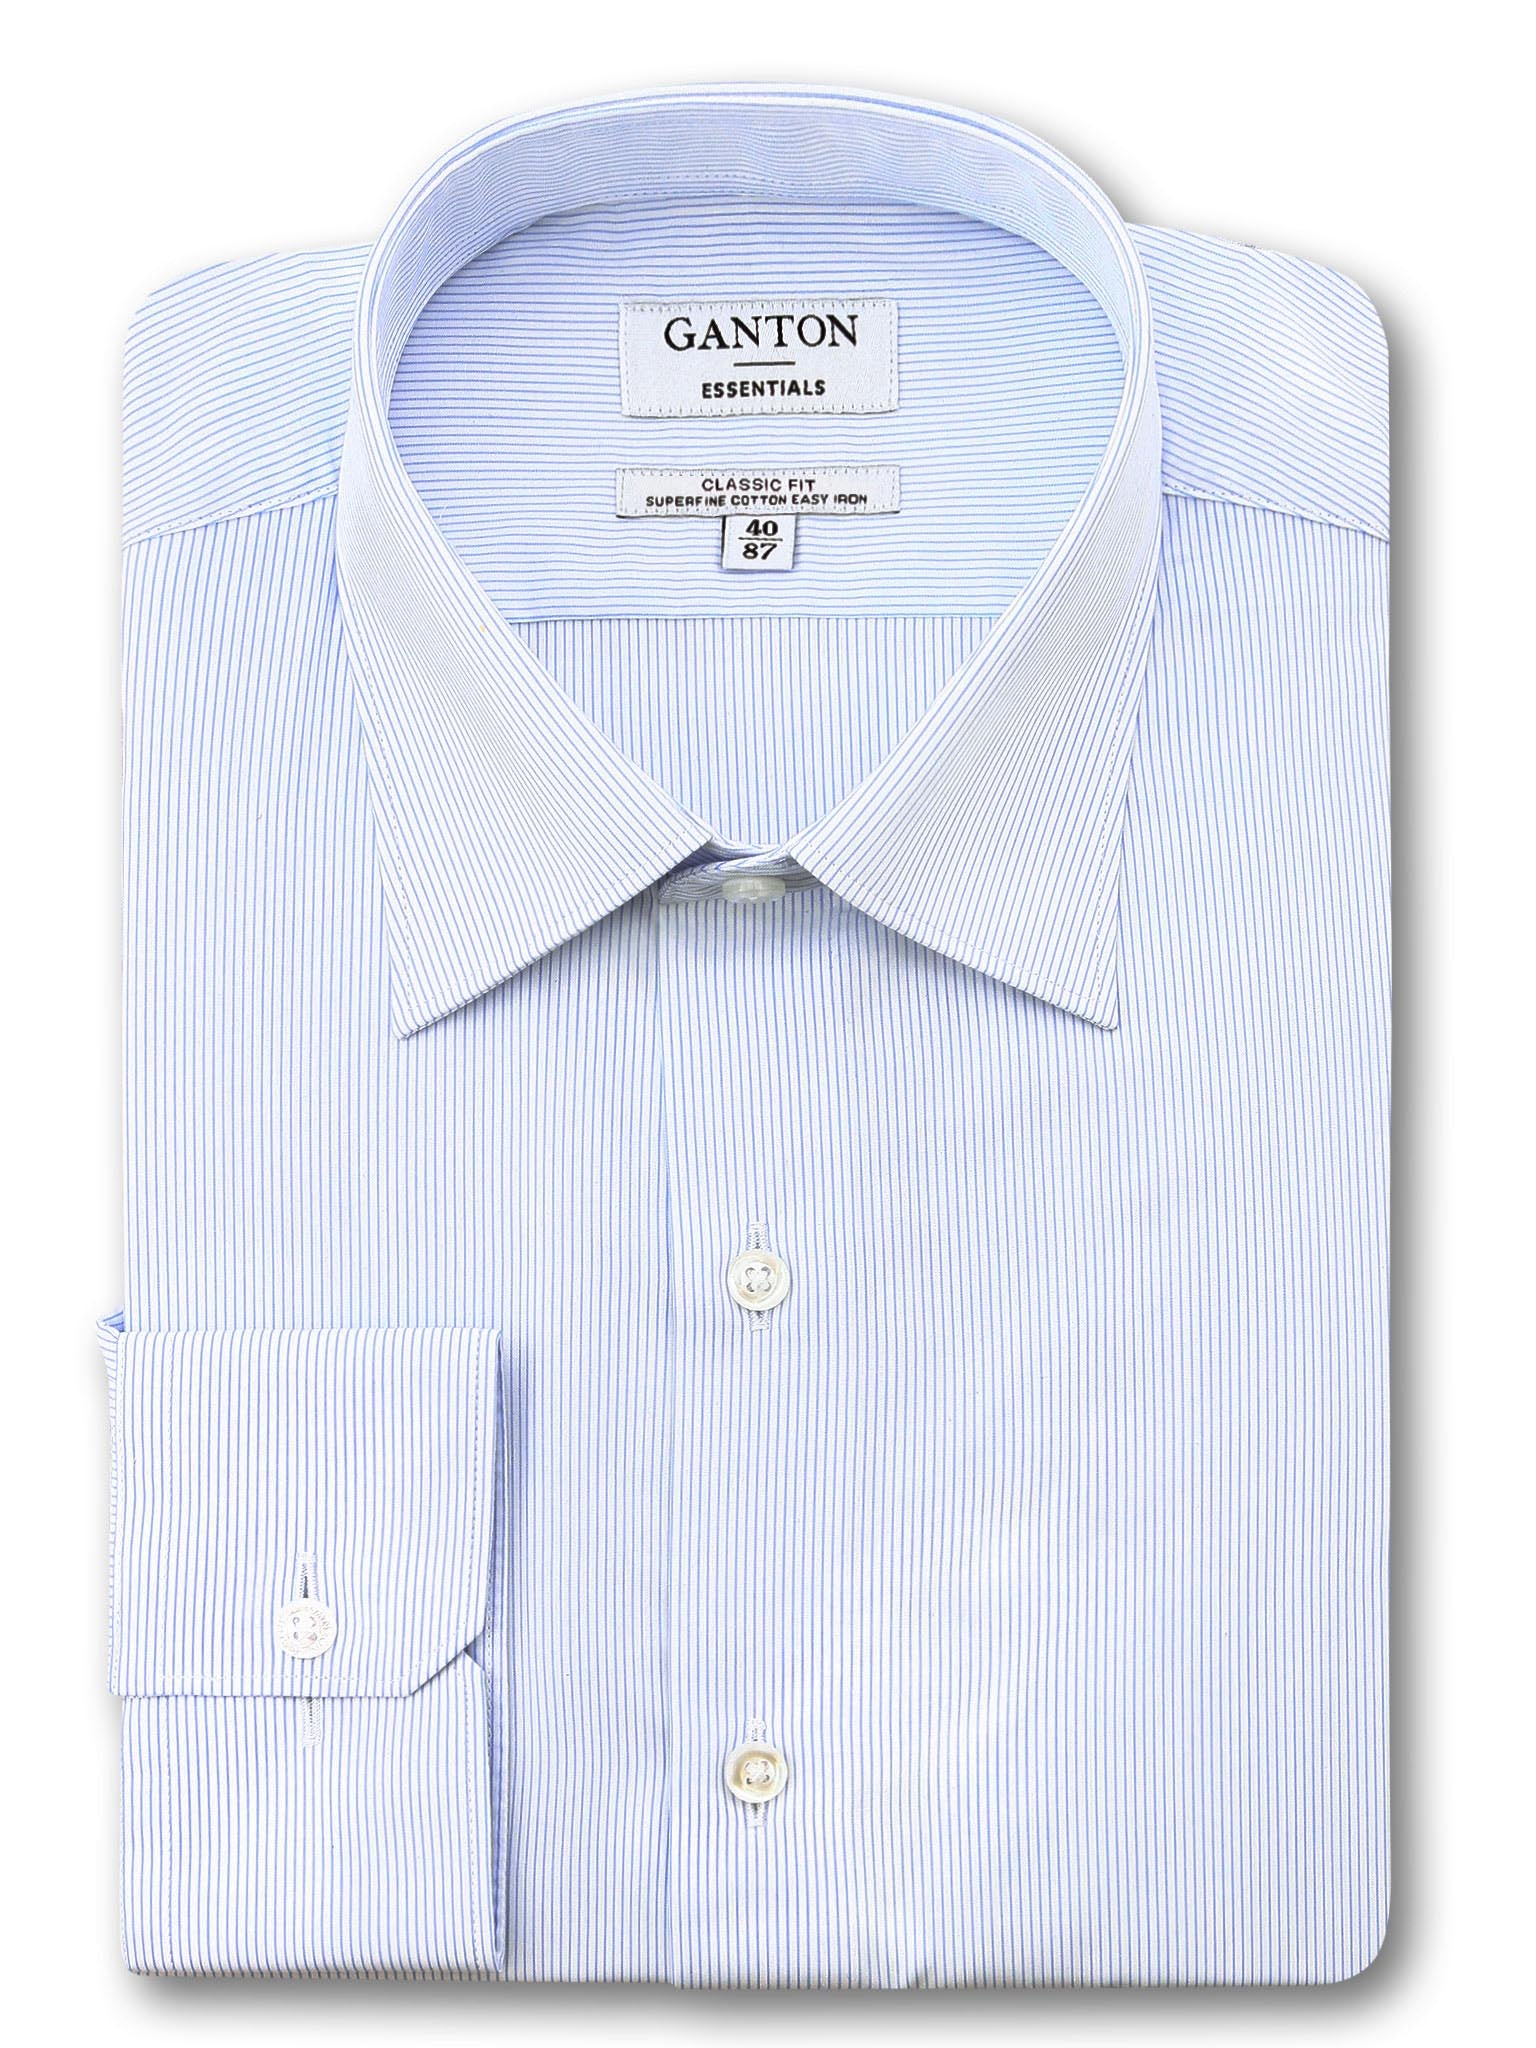 All Light Blue White Stripe Classic Fit Edley Easy Iron Superfine Cotton Essentials Shirt